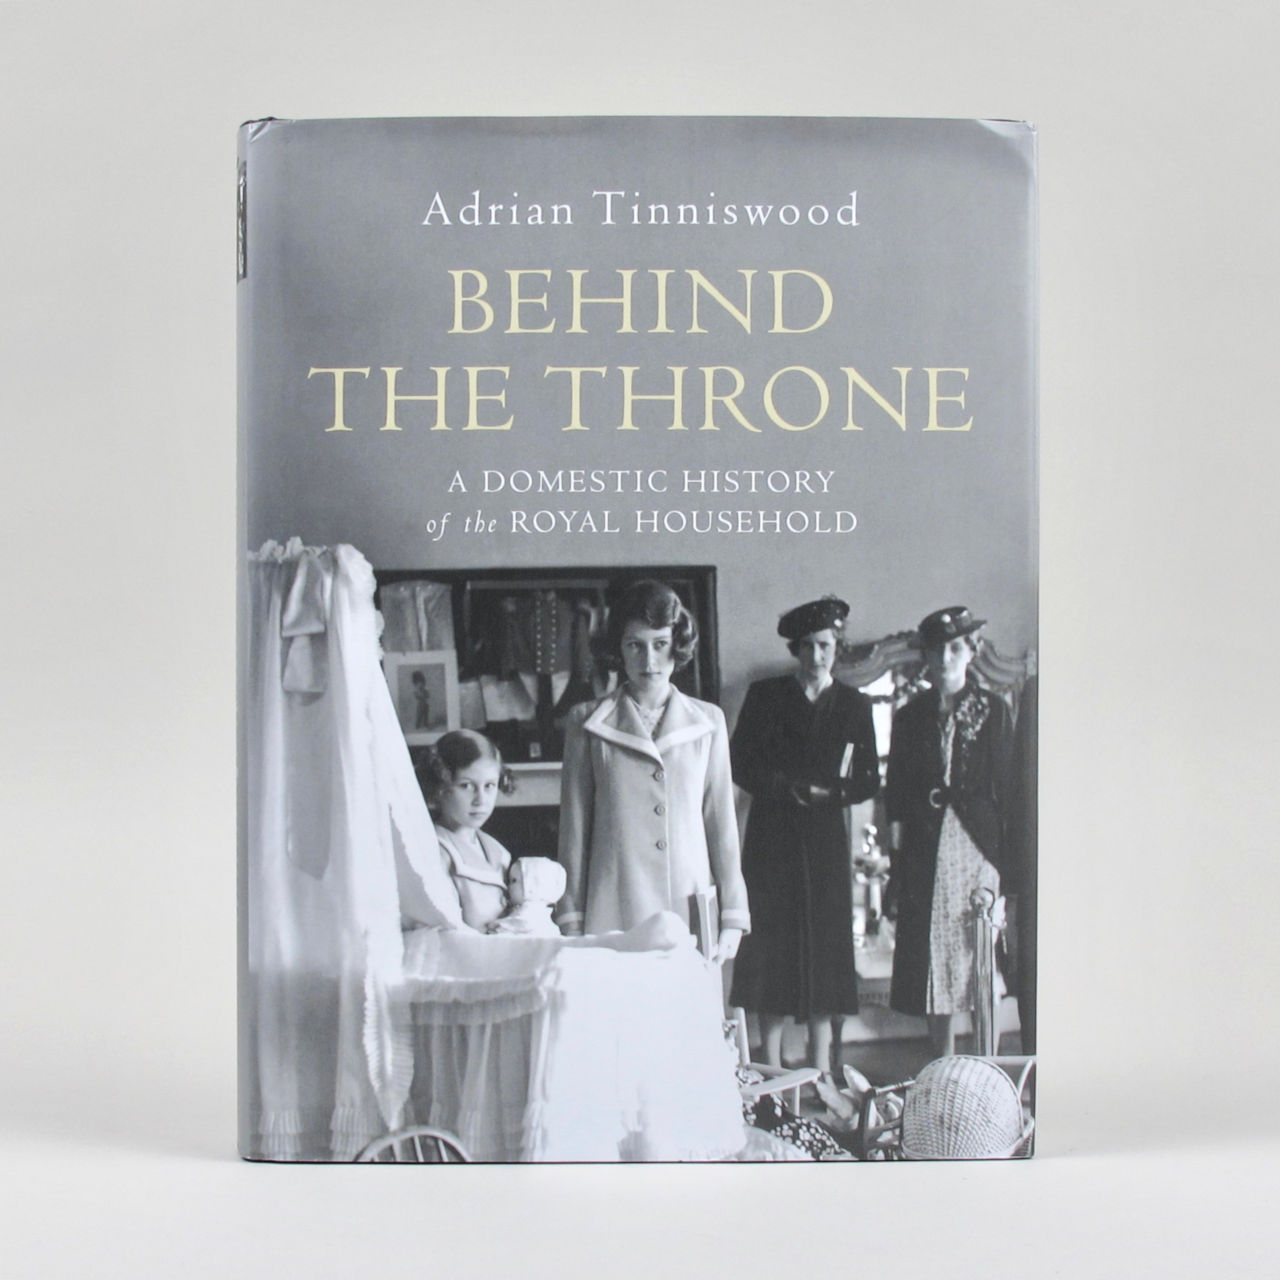 adrian tinniswood behind the throne 01